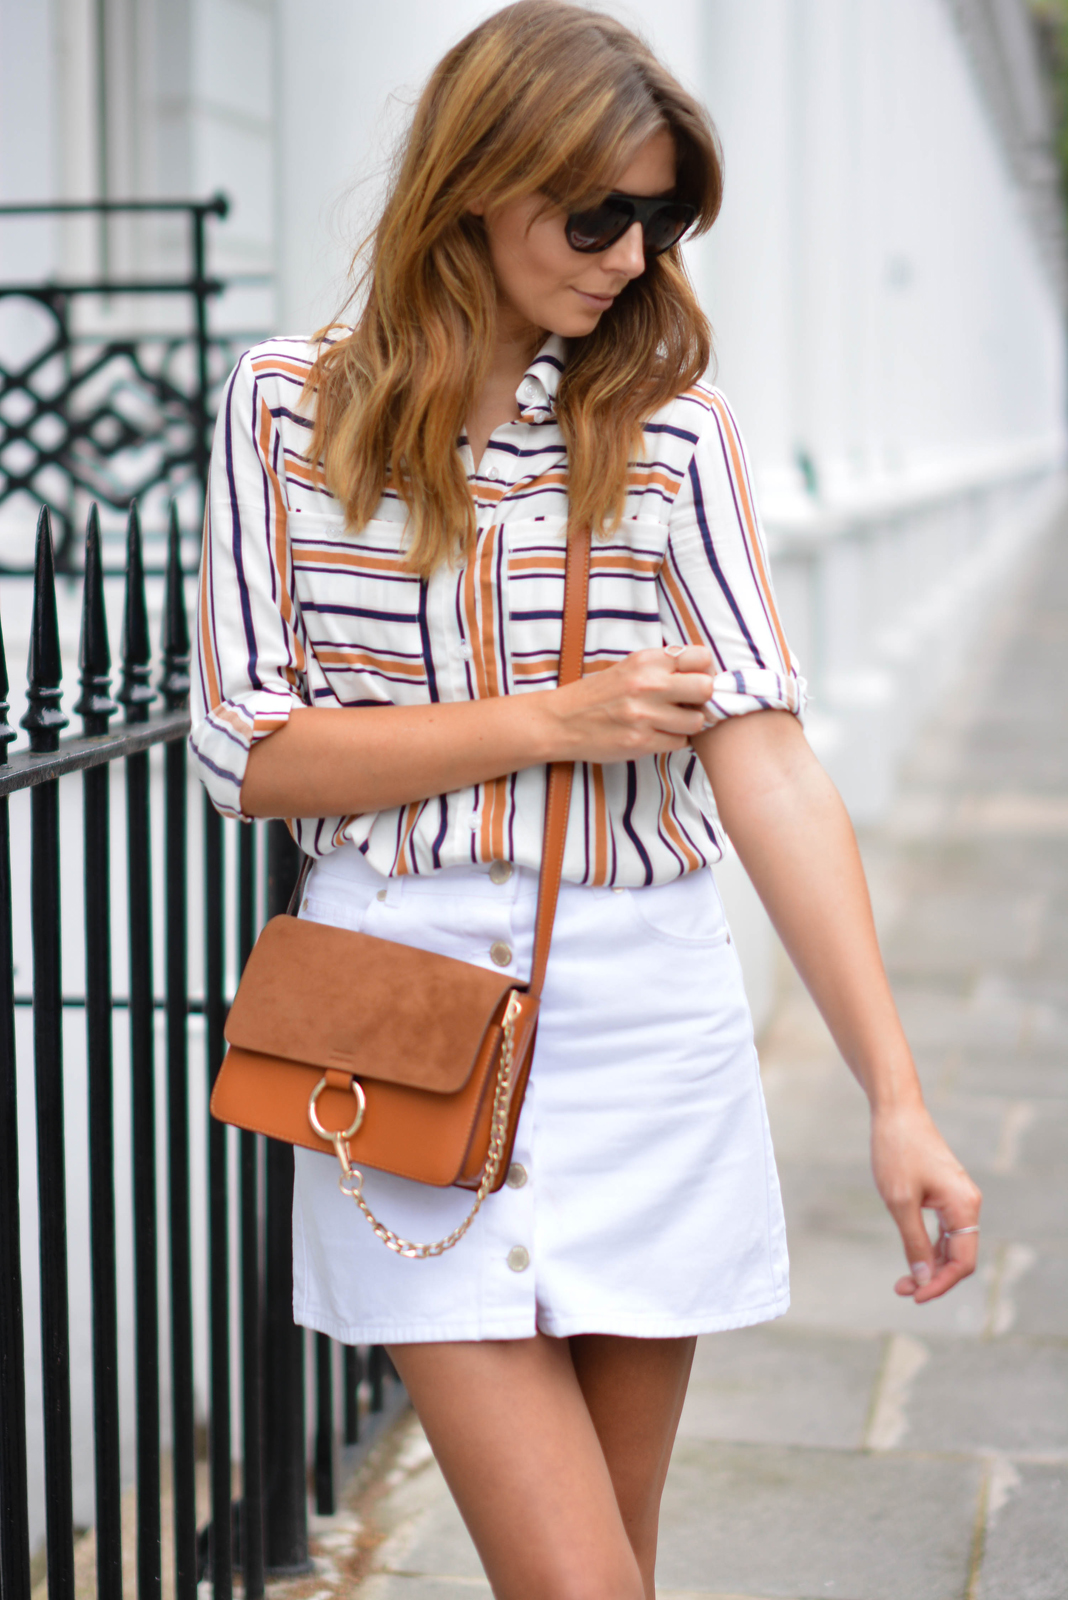 EJSTYLE wears White button up denim mini skirt, retro stripe shirt, Tan suede leather chloe style Faye bag, flat top sunglasses